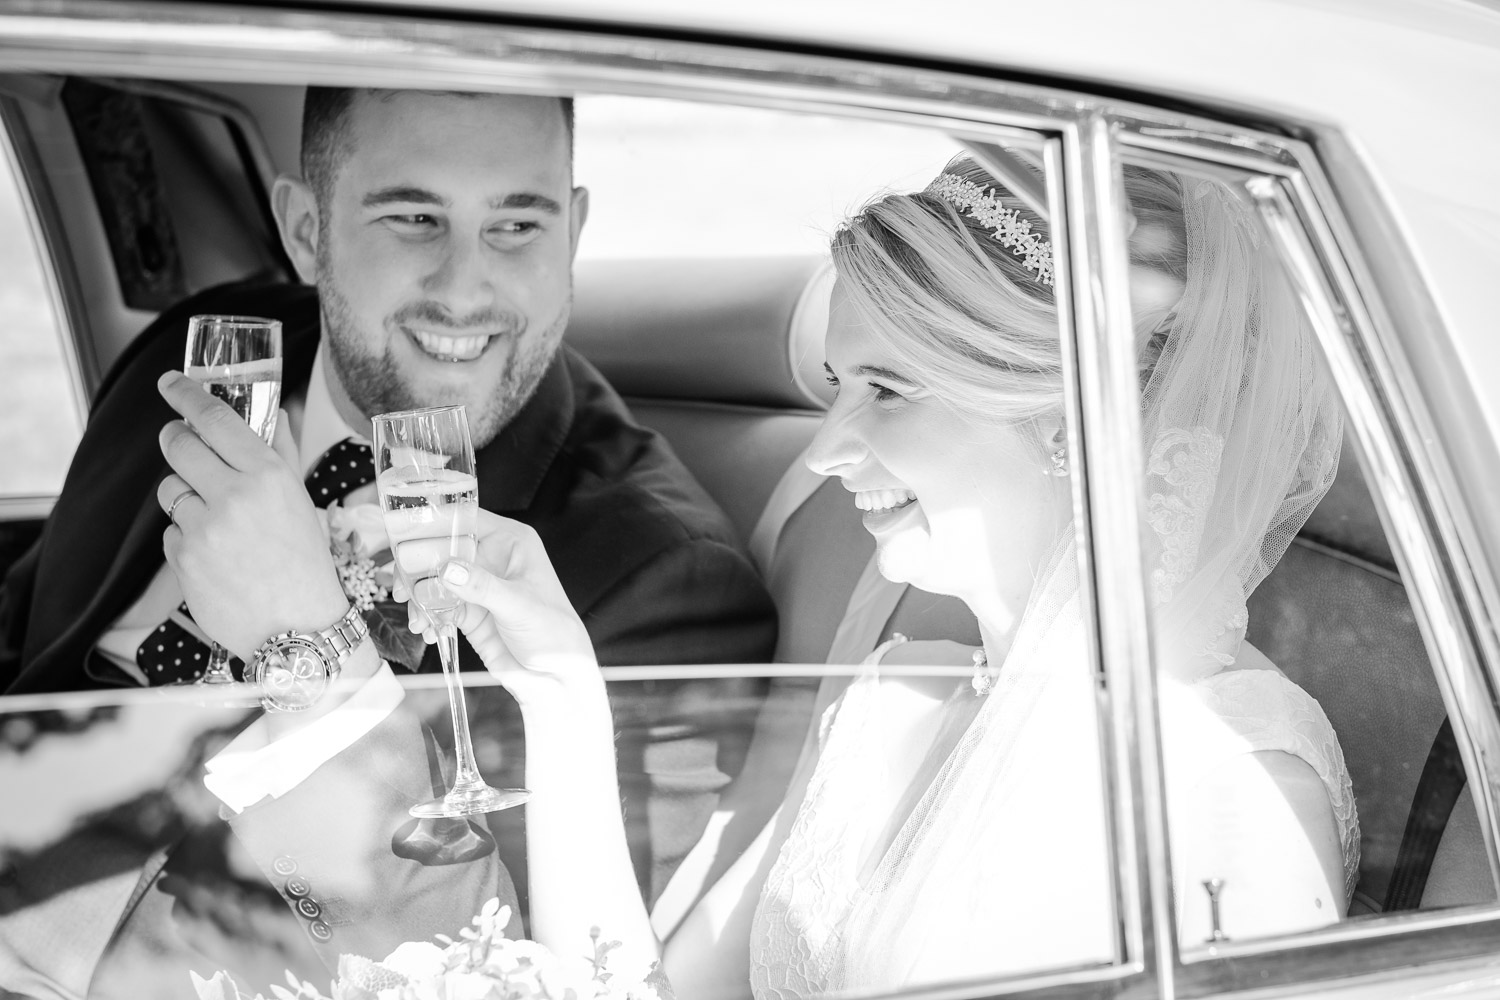 West Bridgford, Nottingham - bride and groom celebrating with a glass of Champaign in their wedding car